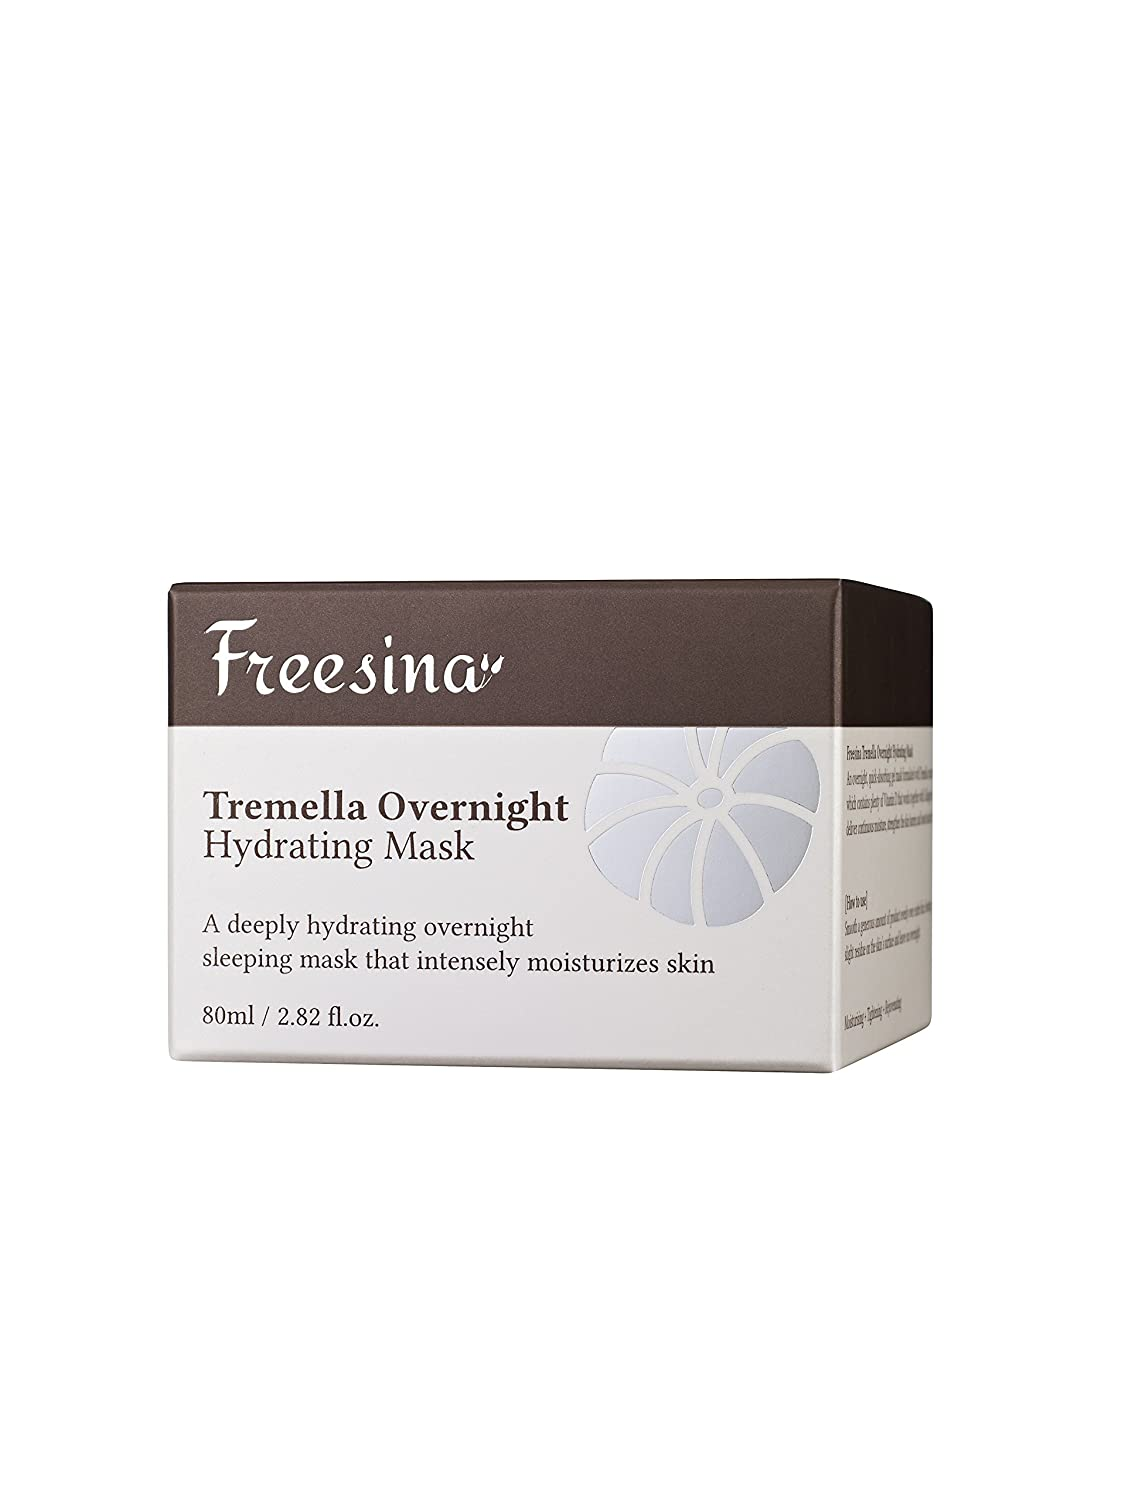 Korean Freesina All Natural Tremella Extract And Hyaluronic Acid Overnight Hydrating Mask Rich Moisture, Wrinkle Improvement, None Sticky, Gel Cream – 80 ml